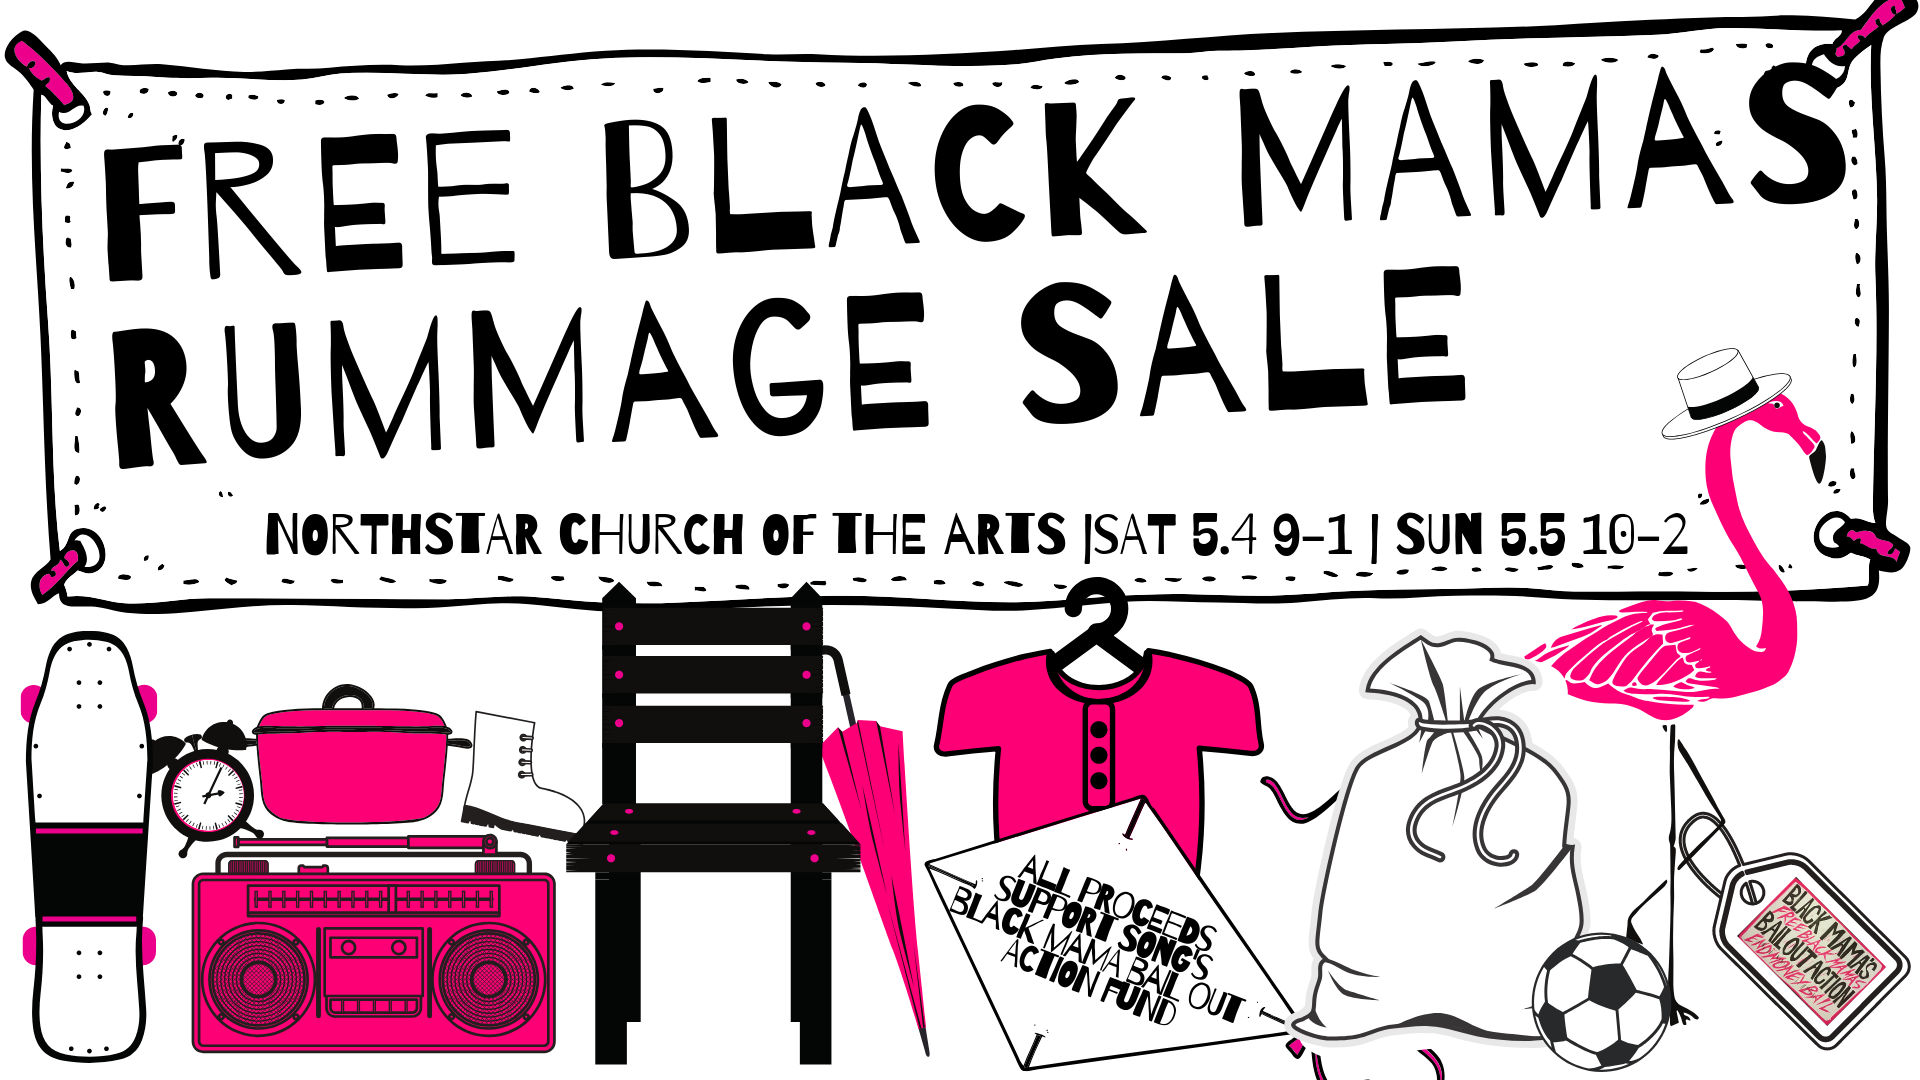 FBMBO RUMMAGE SALE FB EVENT.png